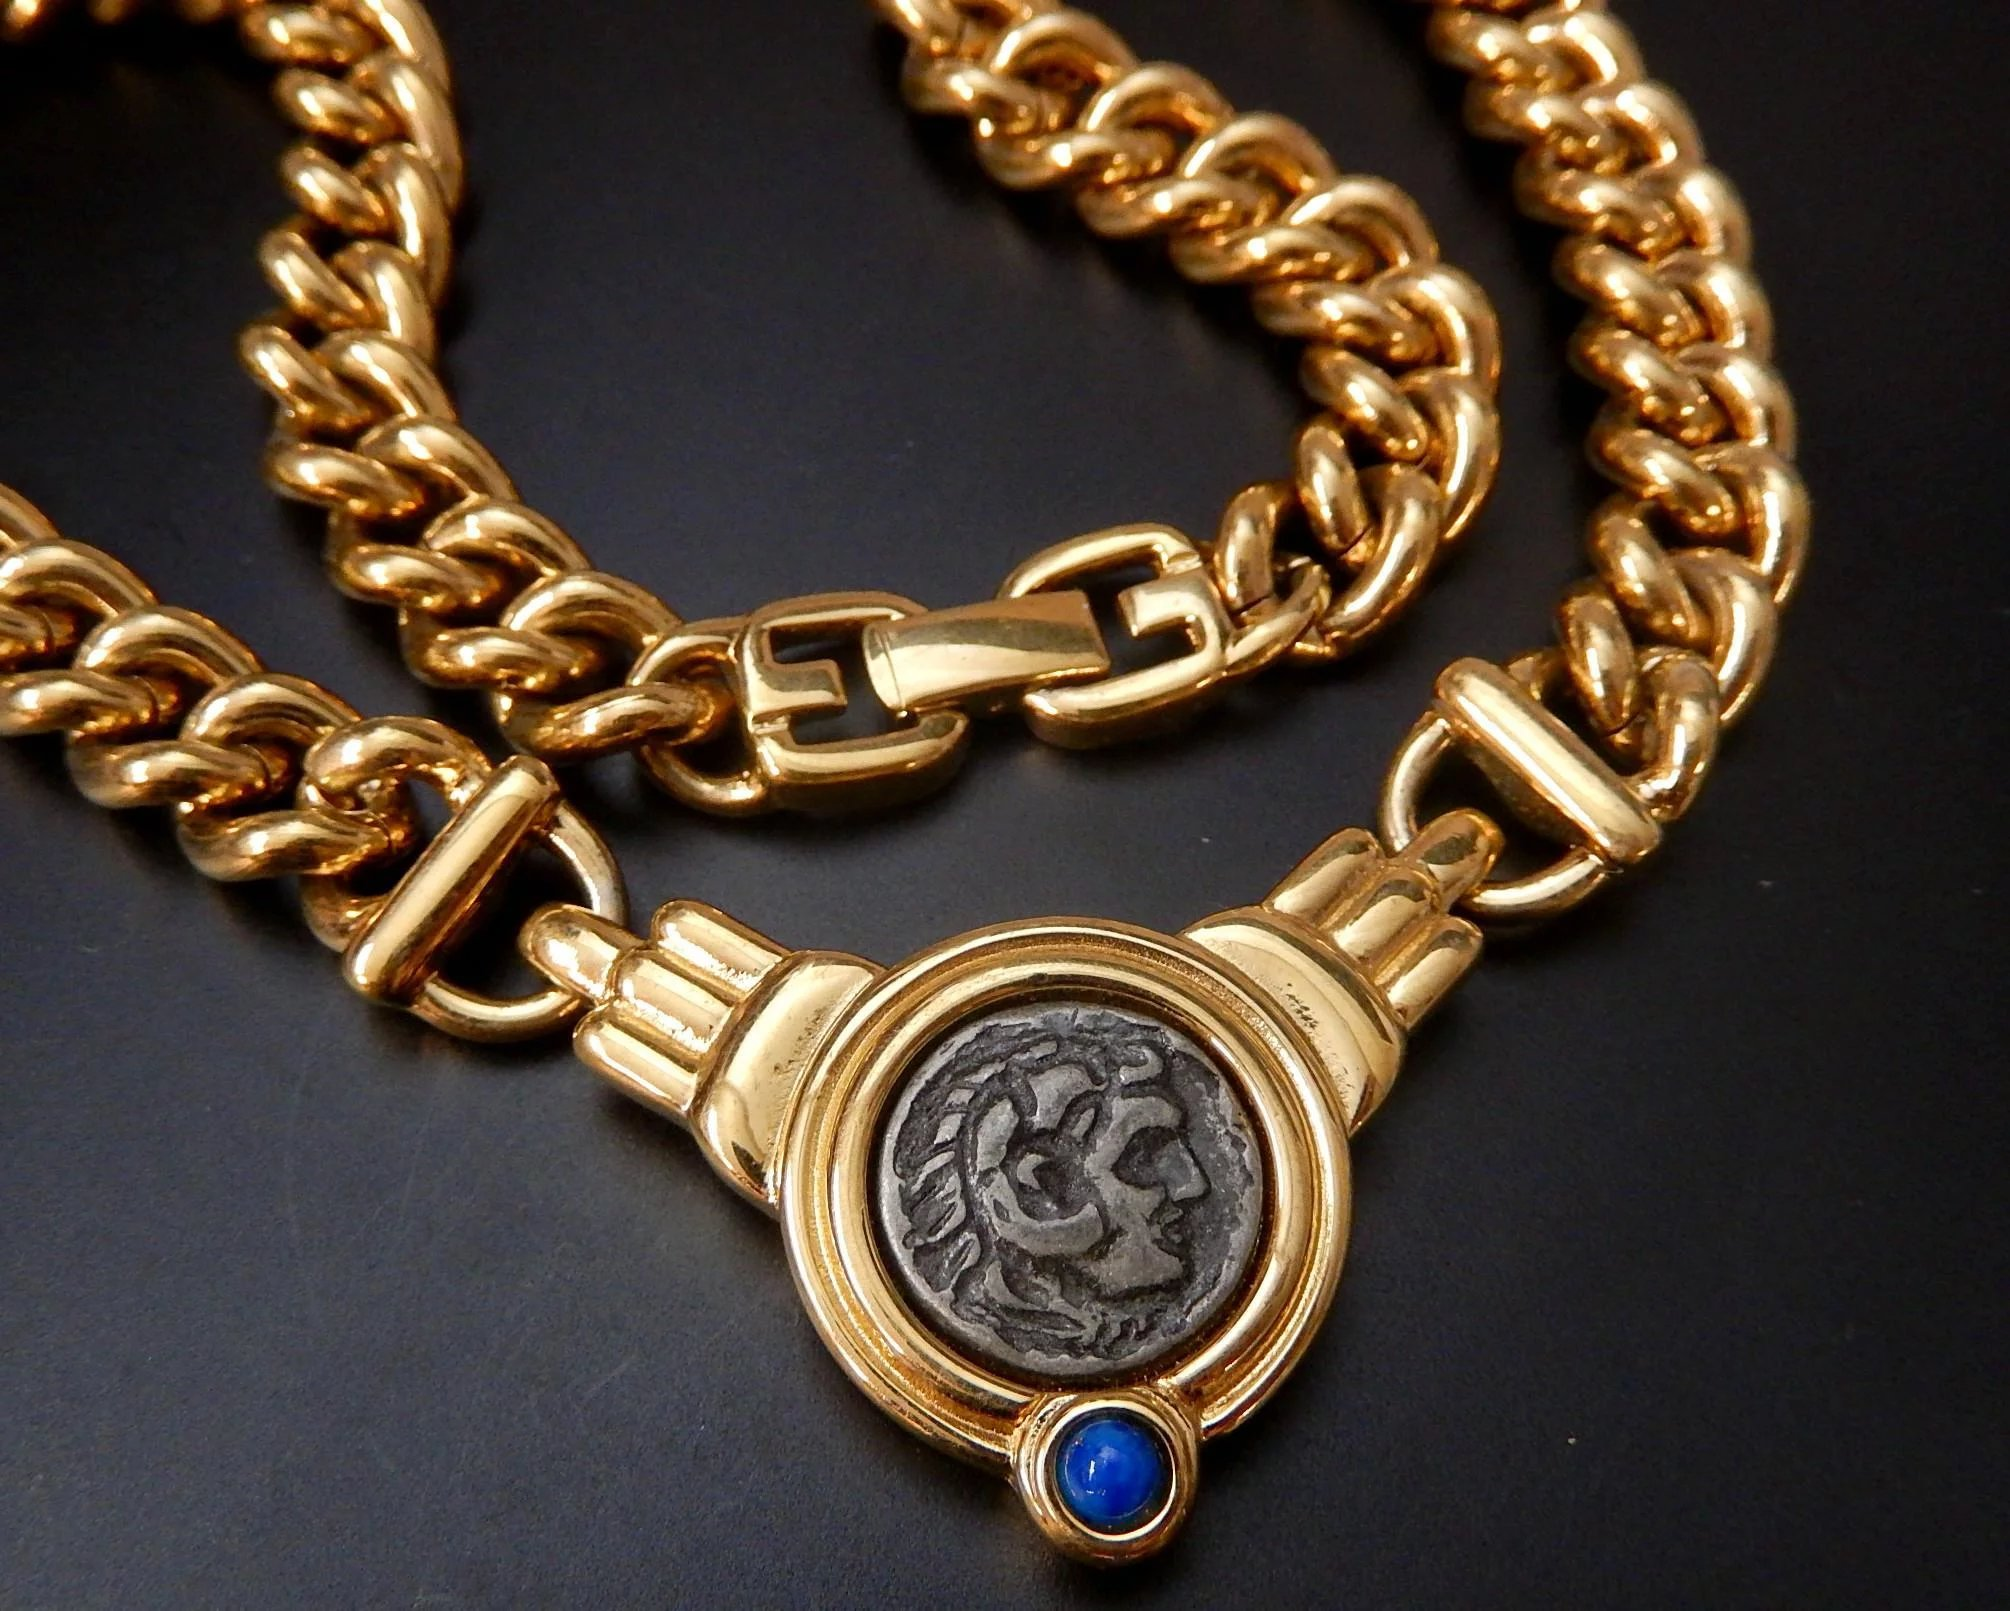 at roman with necklace file l coin walters bulgari pendant coins diamond gold